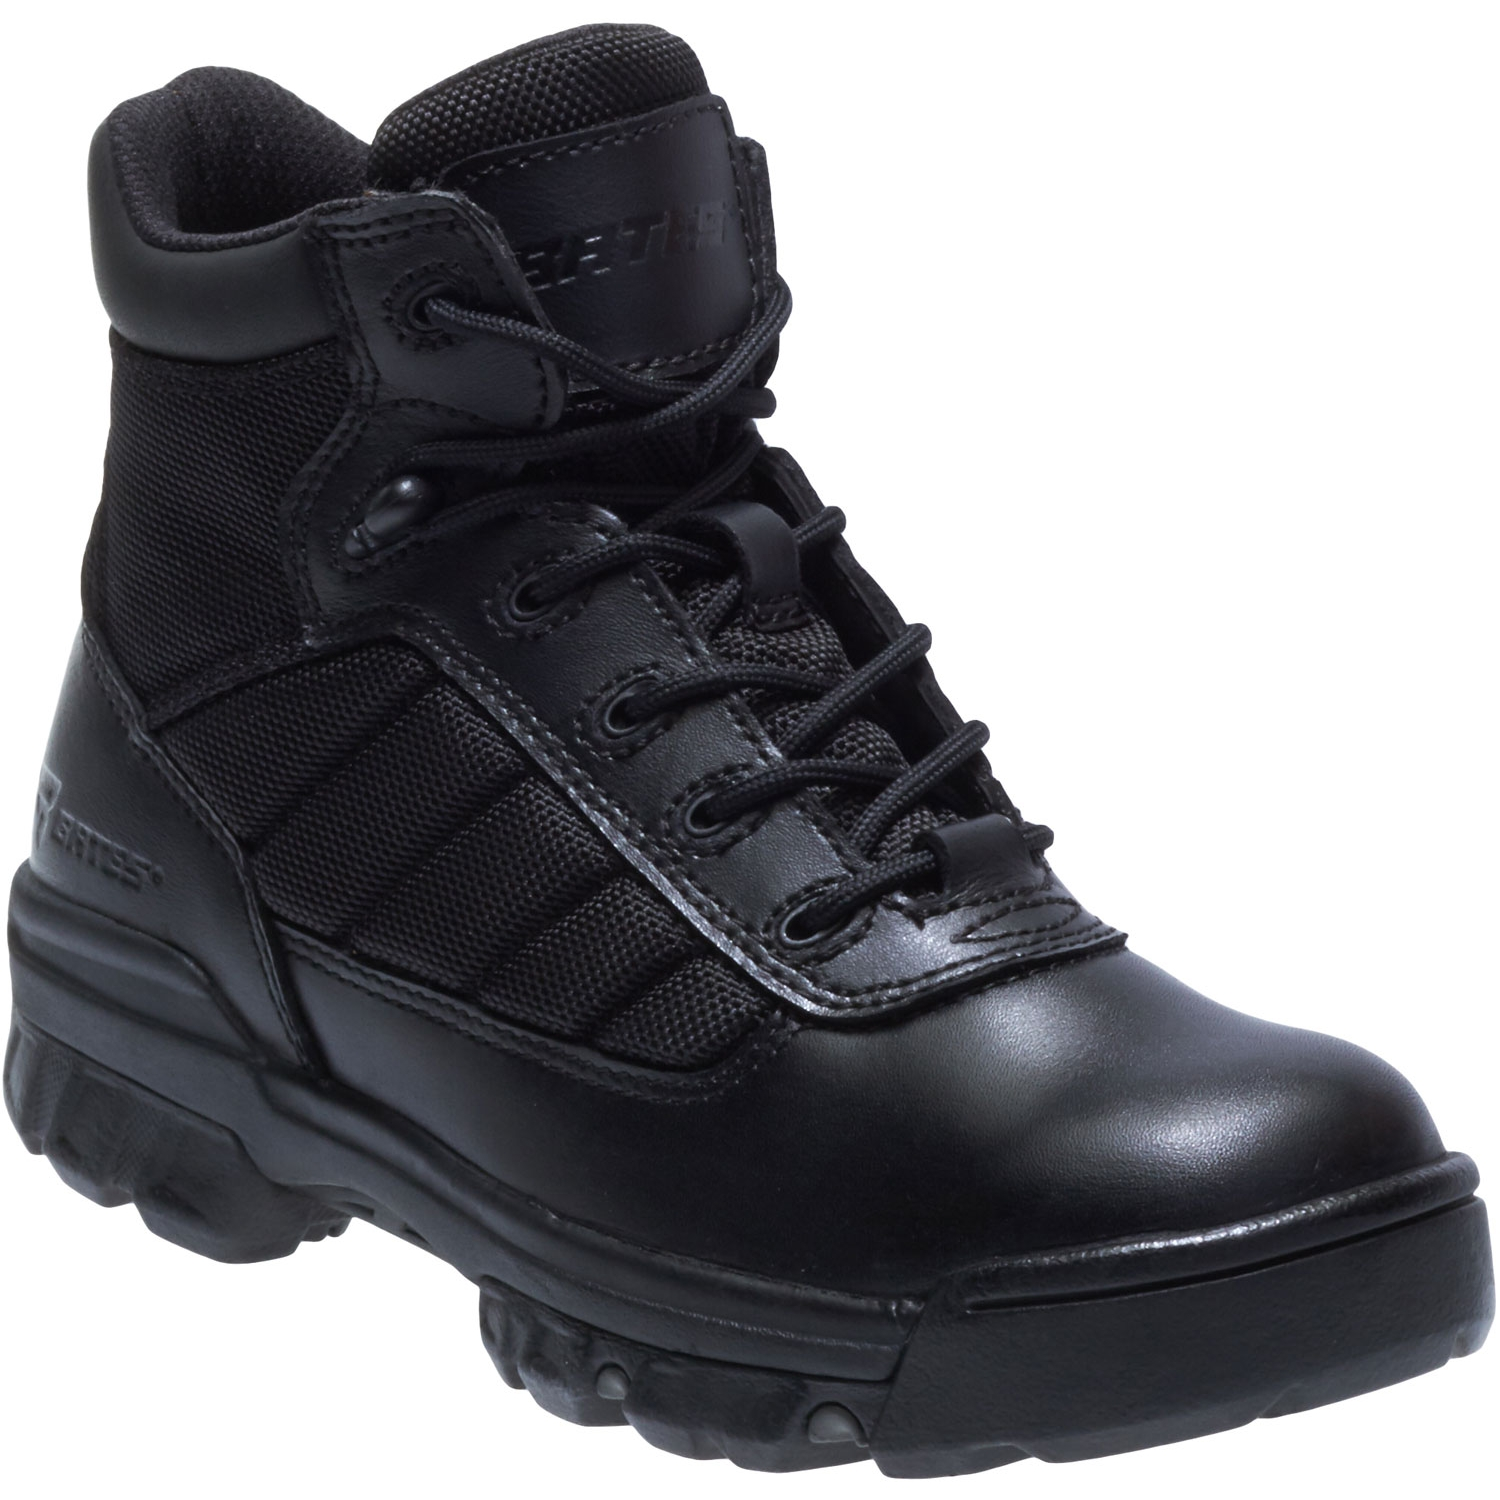 a8d98a8bddb Bates Black 5 Inch Tactical Boot Women's